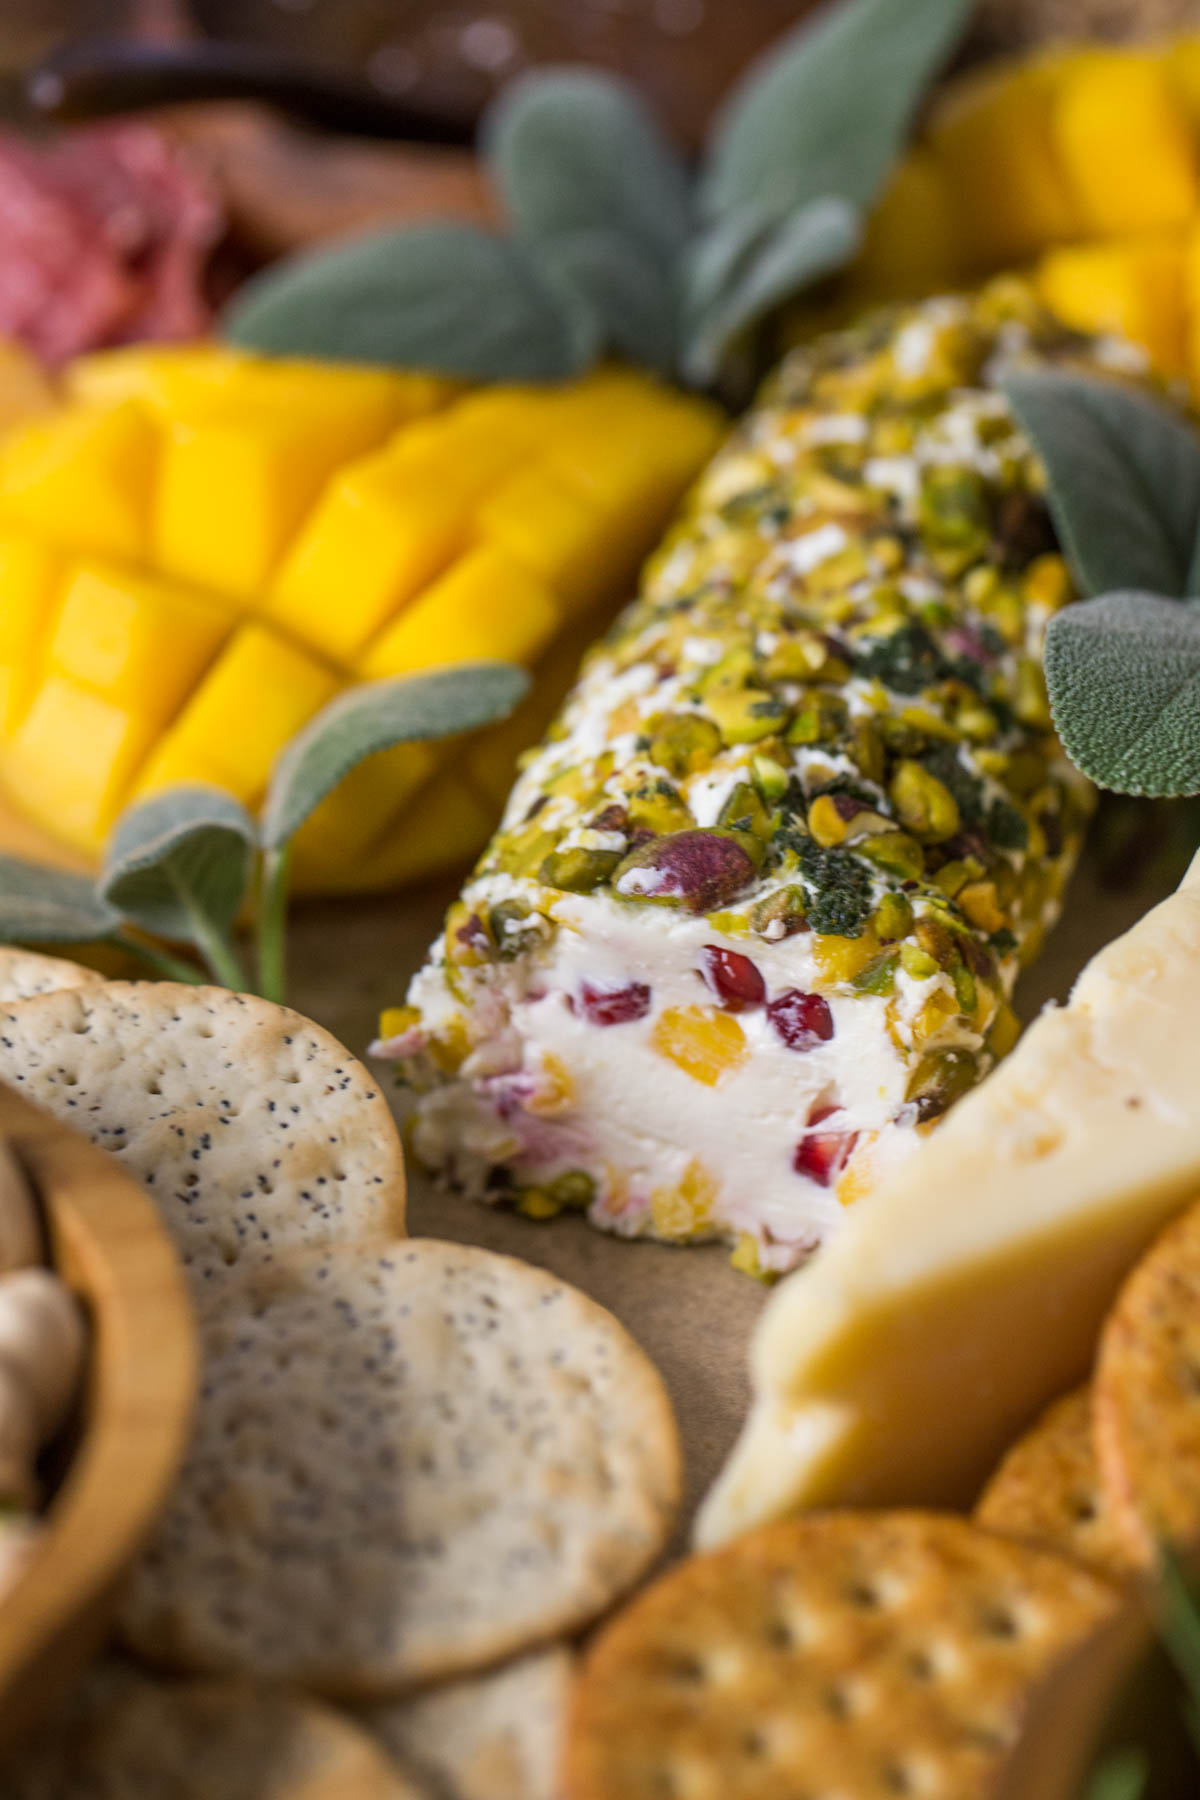 Close up view of Pistachio Crusted Cheese Log displayed as part of a charcuterie.